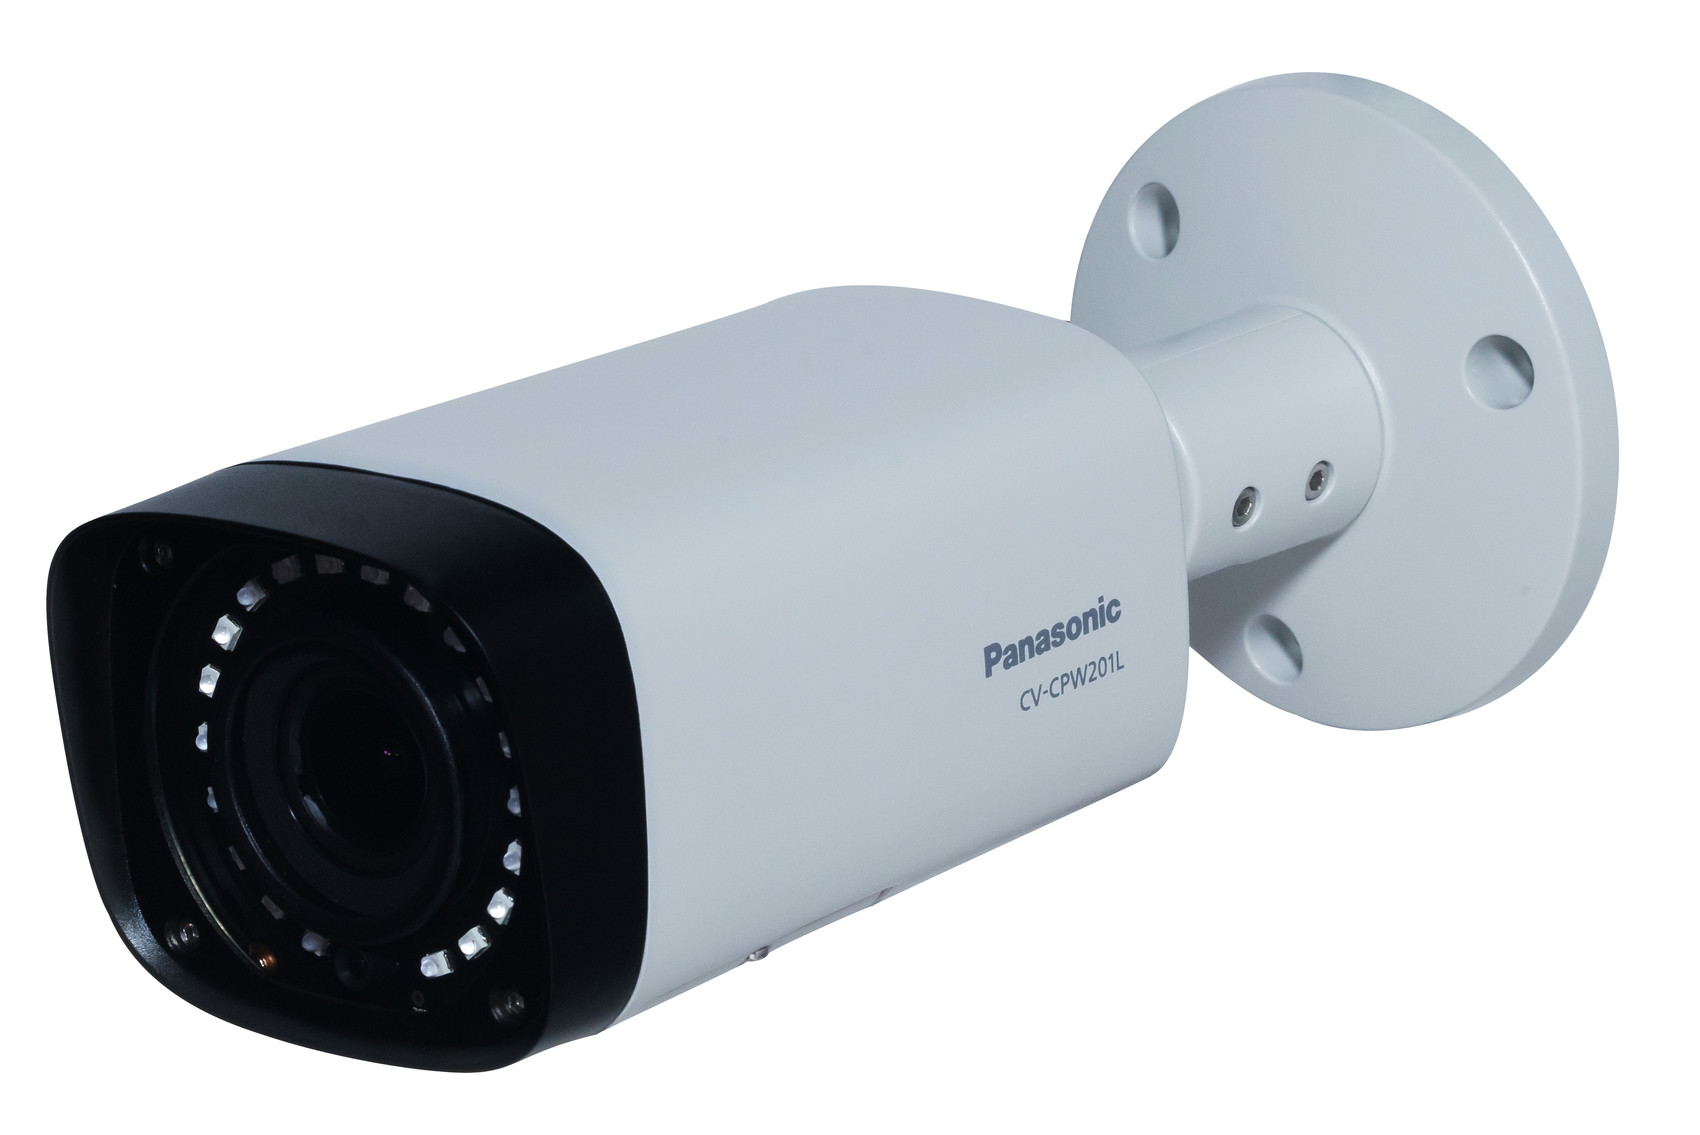 Camera Panasonic C-SERIES CV-CPW201L